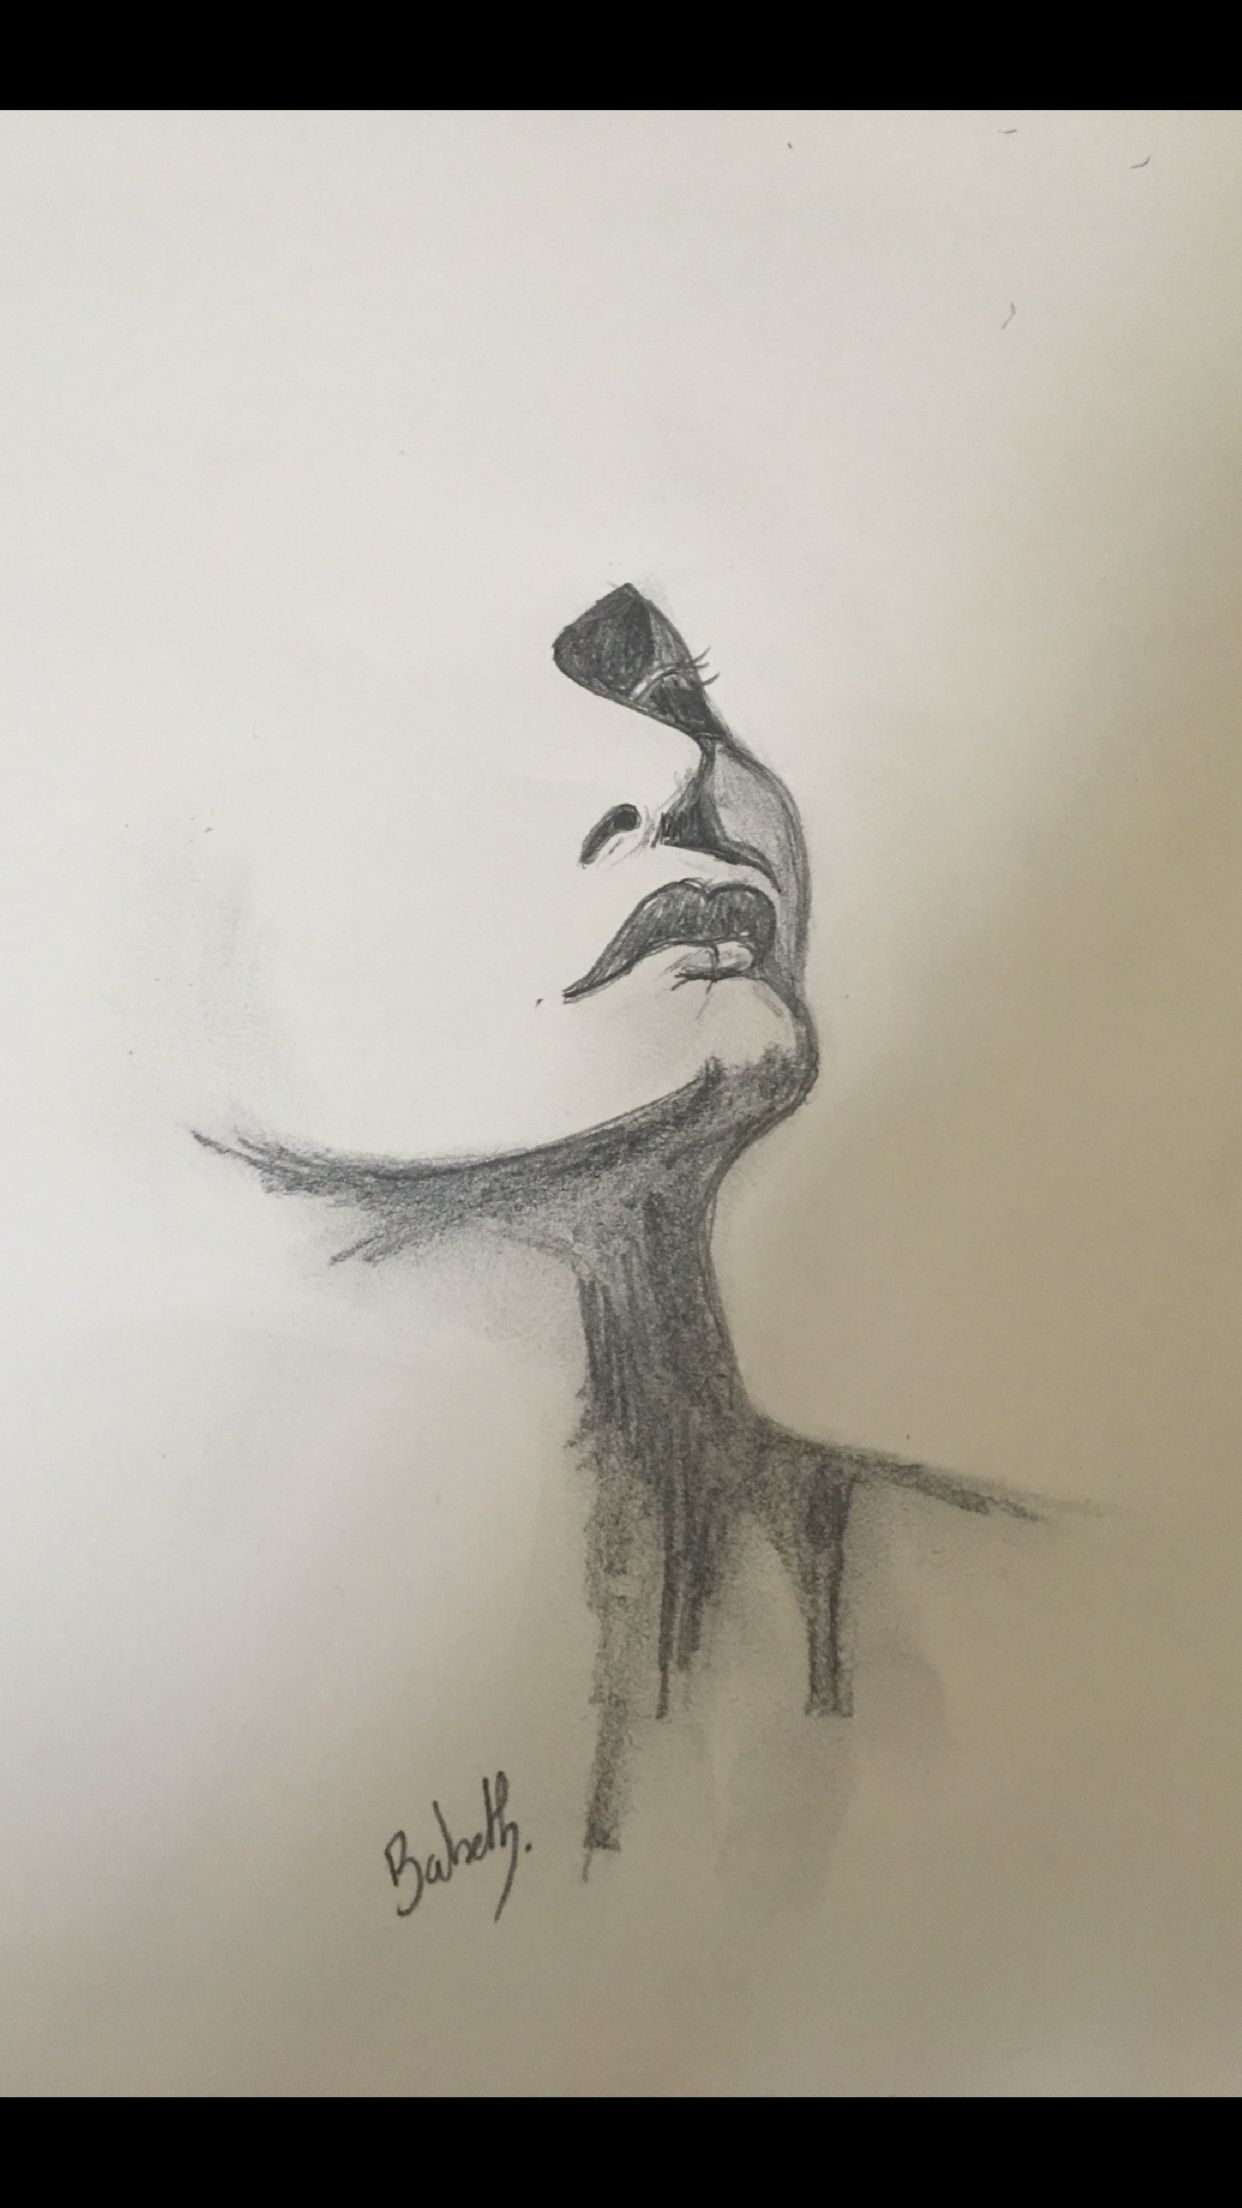 Amazing painting art drawings sketches abstract drawings pencil drawings edd pencil portrait